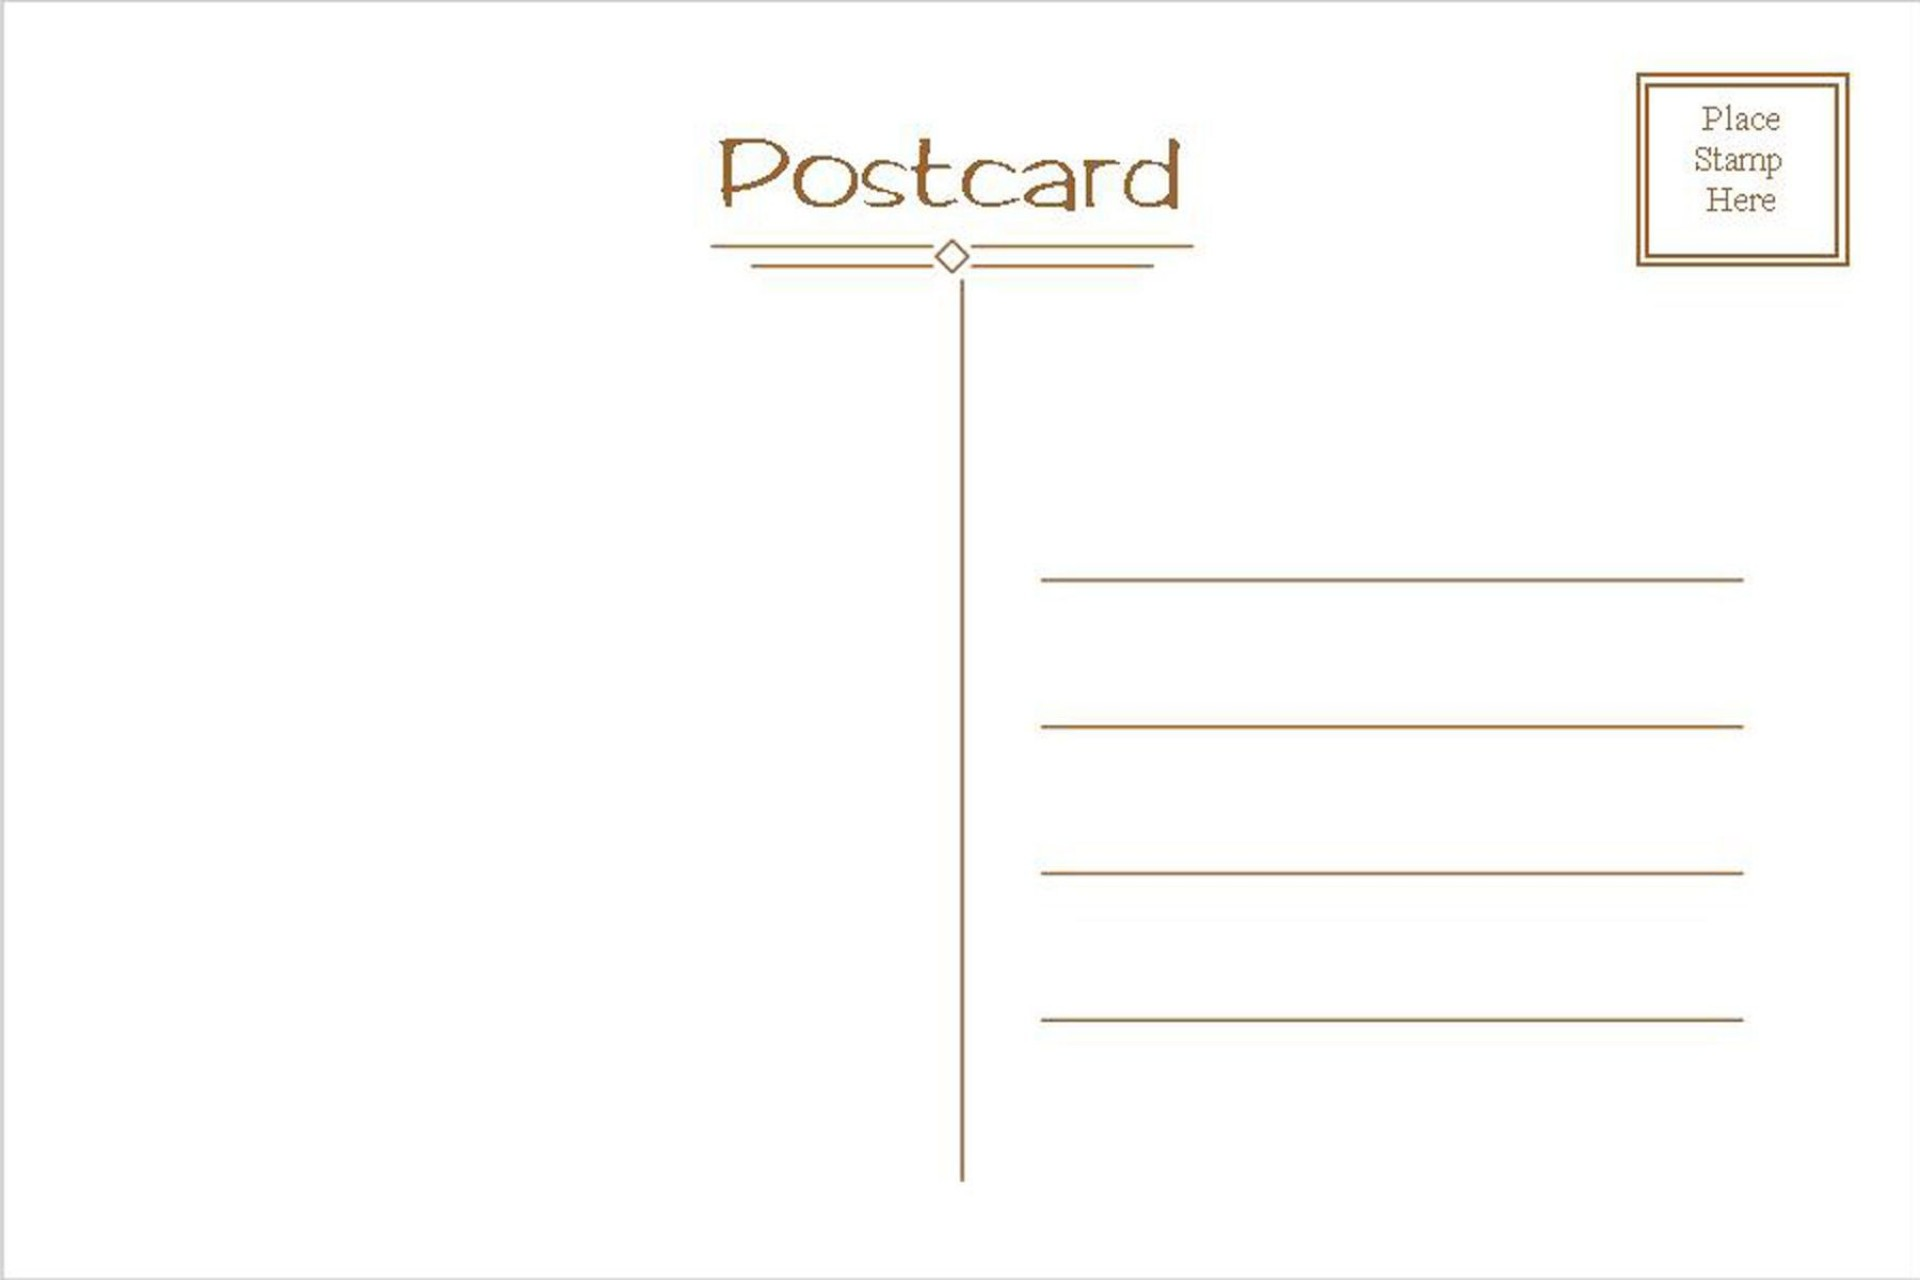 005 Astounding Postcard Template Front And Back Picture  Free Word1920